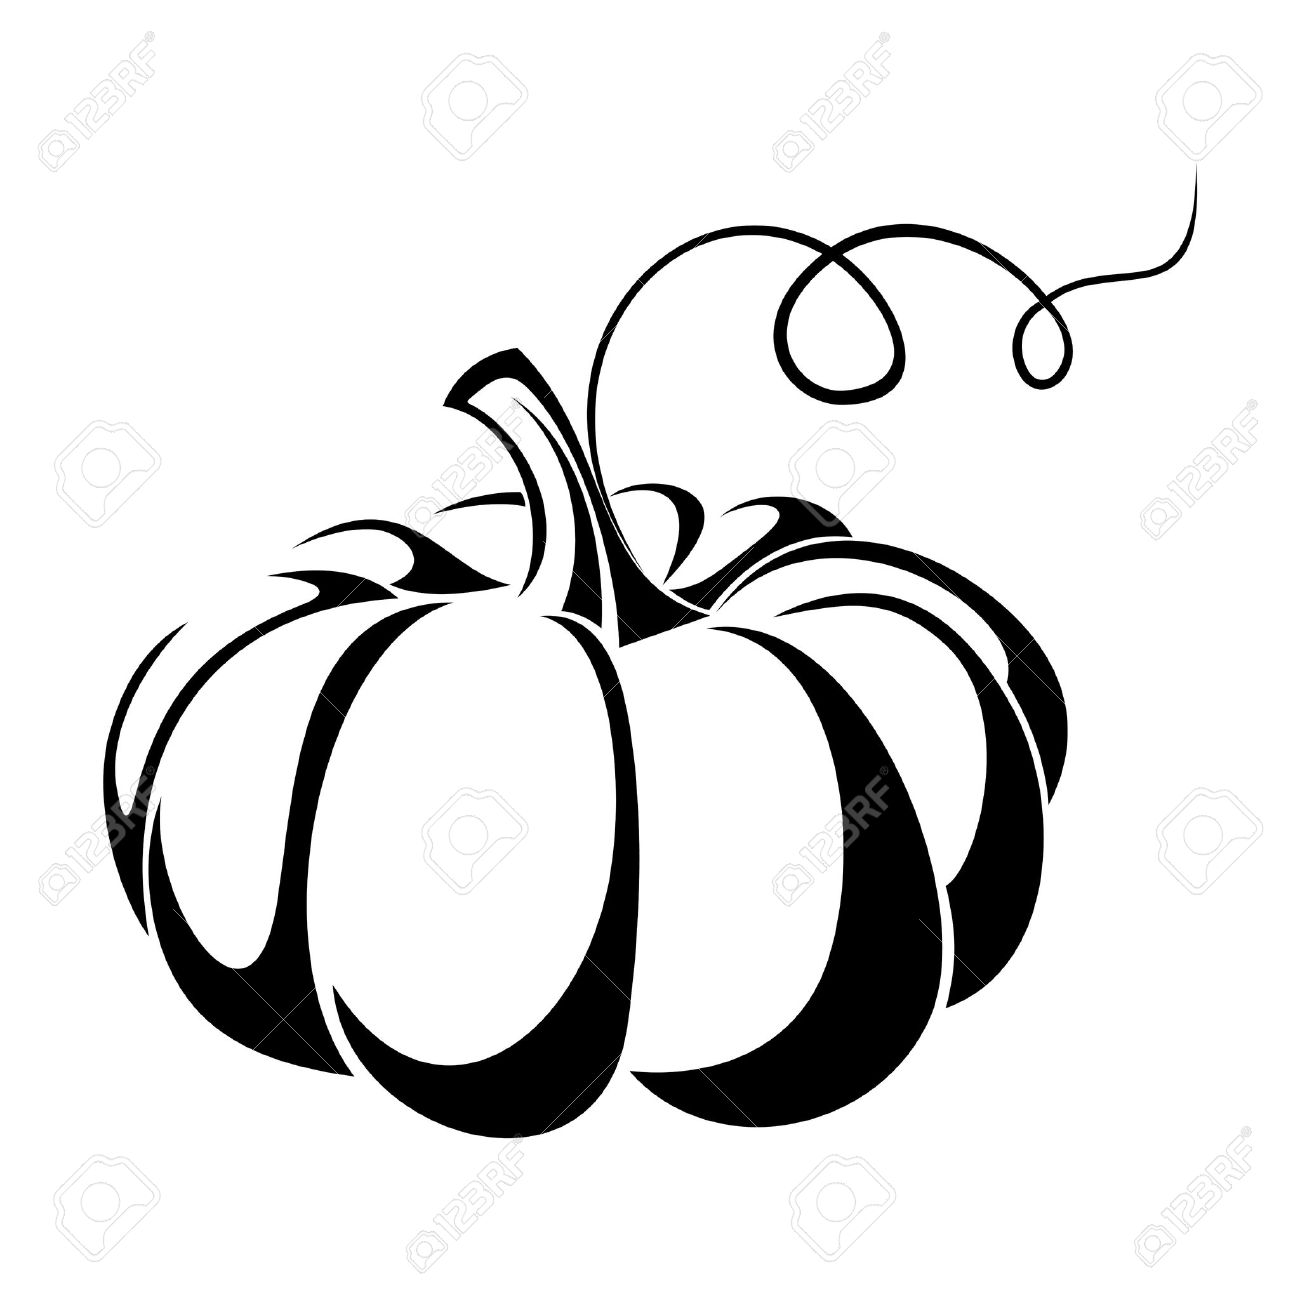 pumpkin vector black silhouette royalty free cliparts vectors and rh 123rf com Halloween Pumpkin Vector Pumpkin Clip Art Vector